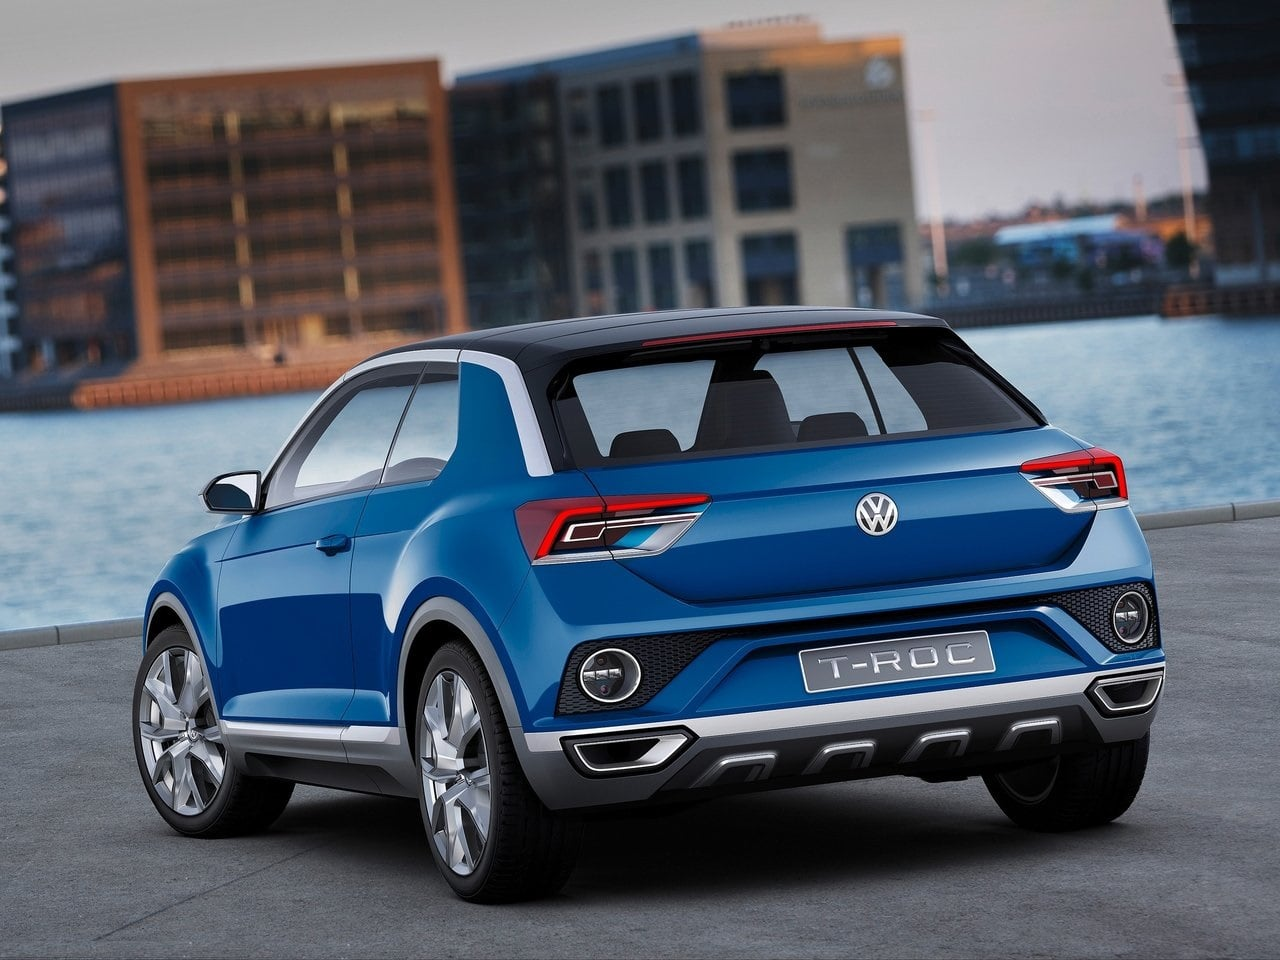 volkswagen t roc india launch date price specs mileage. Black Bedroom Furniture Sets. Home Design Ideas